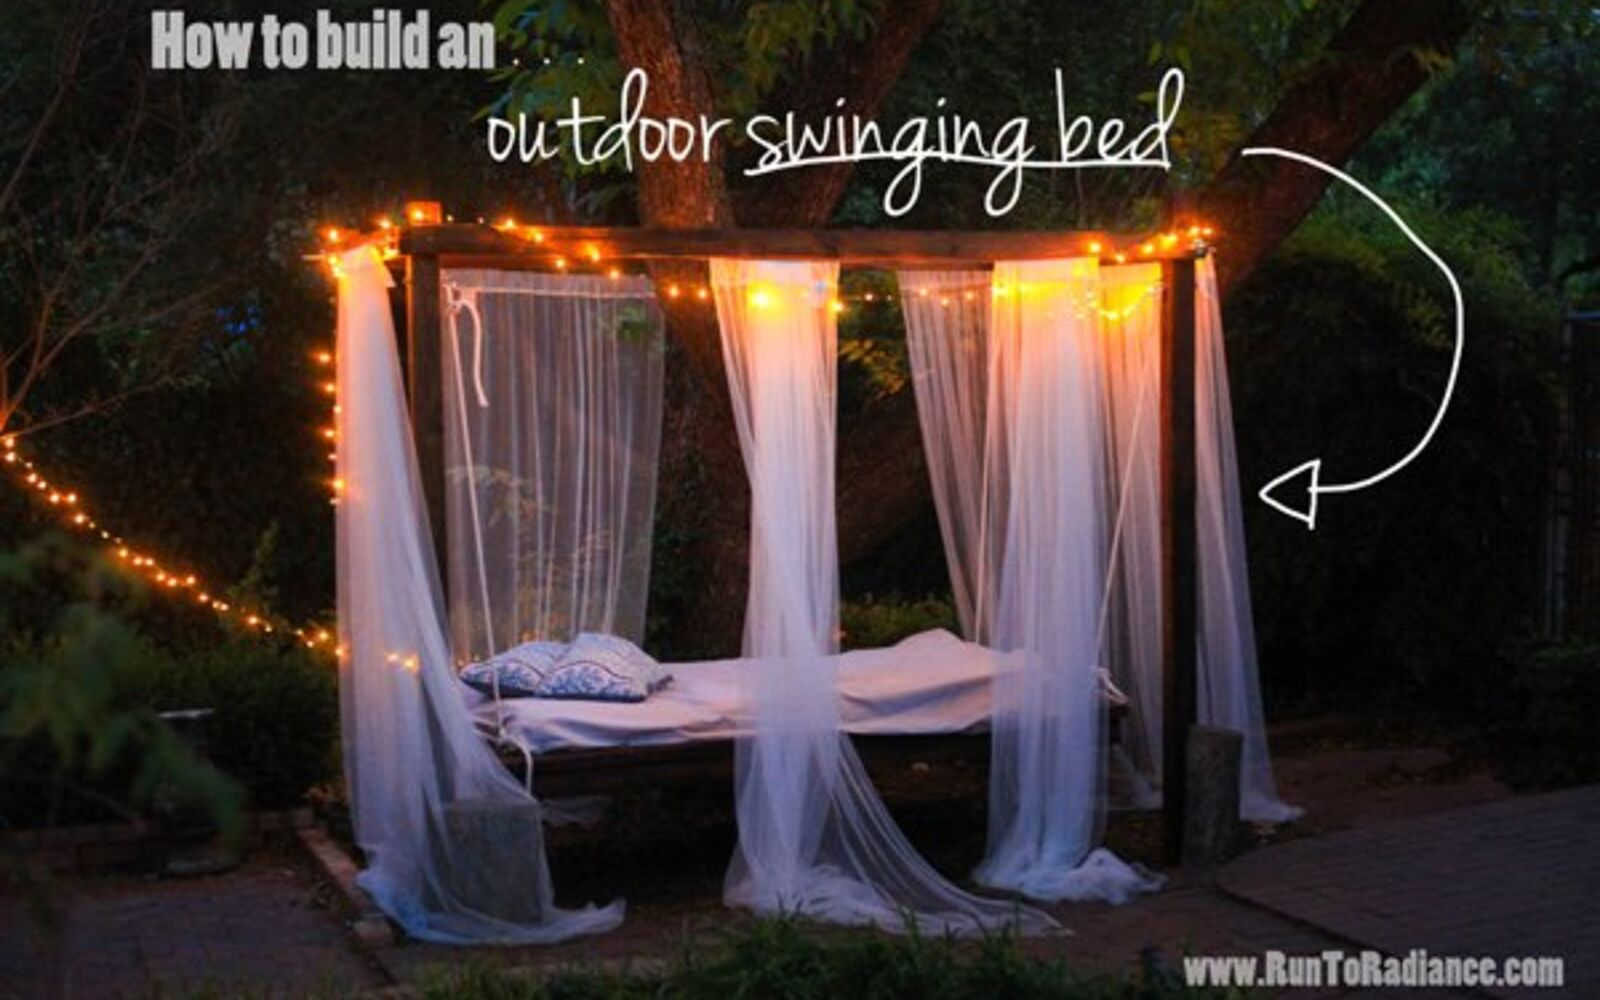 s upgrade your backyard with these 30 clever ideas, Hang a gorgeous swinging bed outdoors